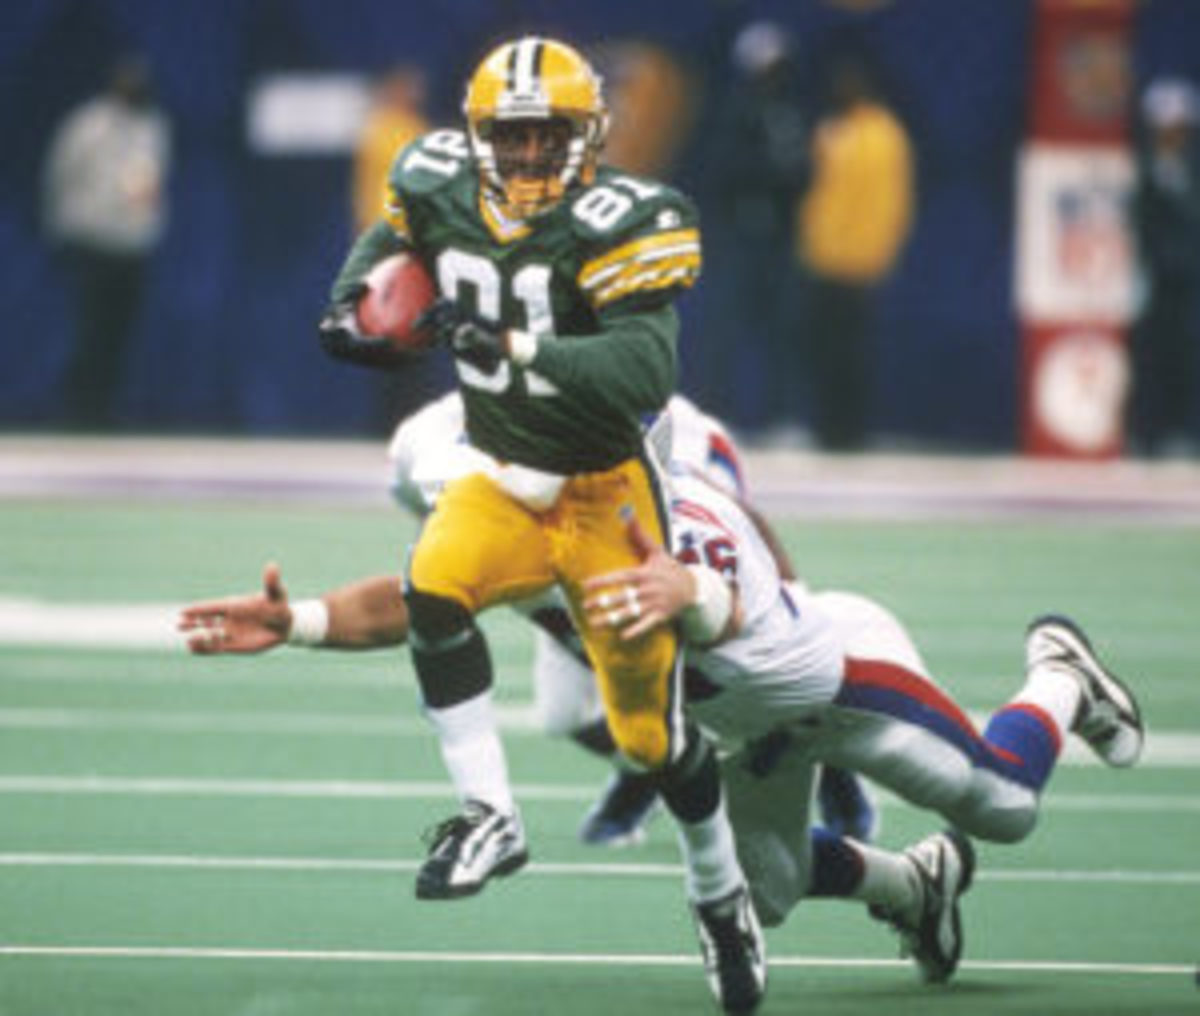 Desmond Howard #81 of the Green Bay Packers returns a kickoff against the New England Patriots during Super Bowl XXXI January 26, 1997 at the Louisiana Superdome in New Orleans, Louisiana. The Packers won the game 35-21. (Photo by Focus on Sport/Getty Images)